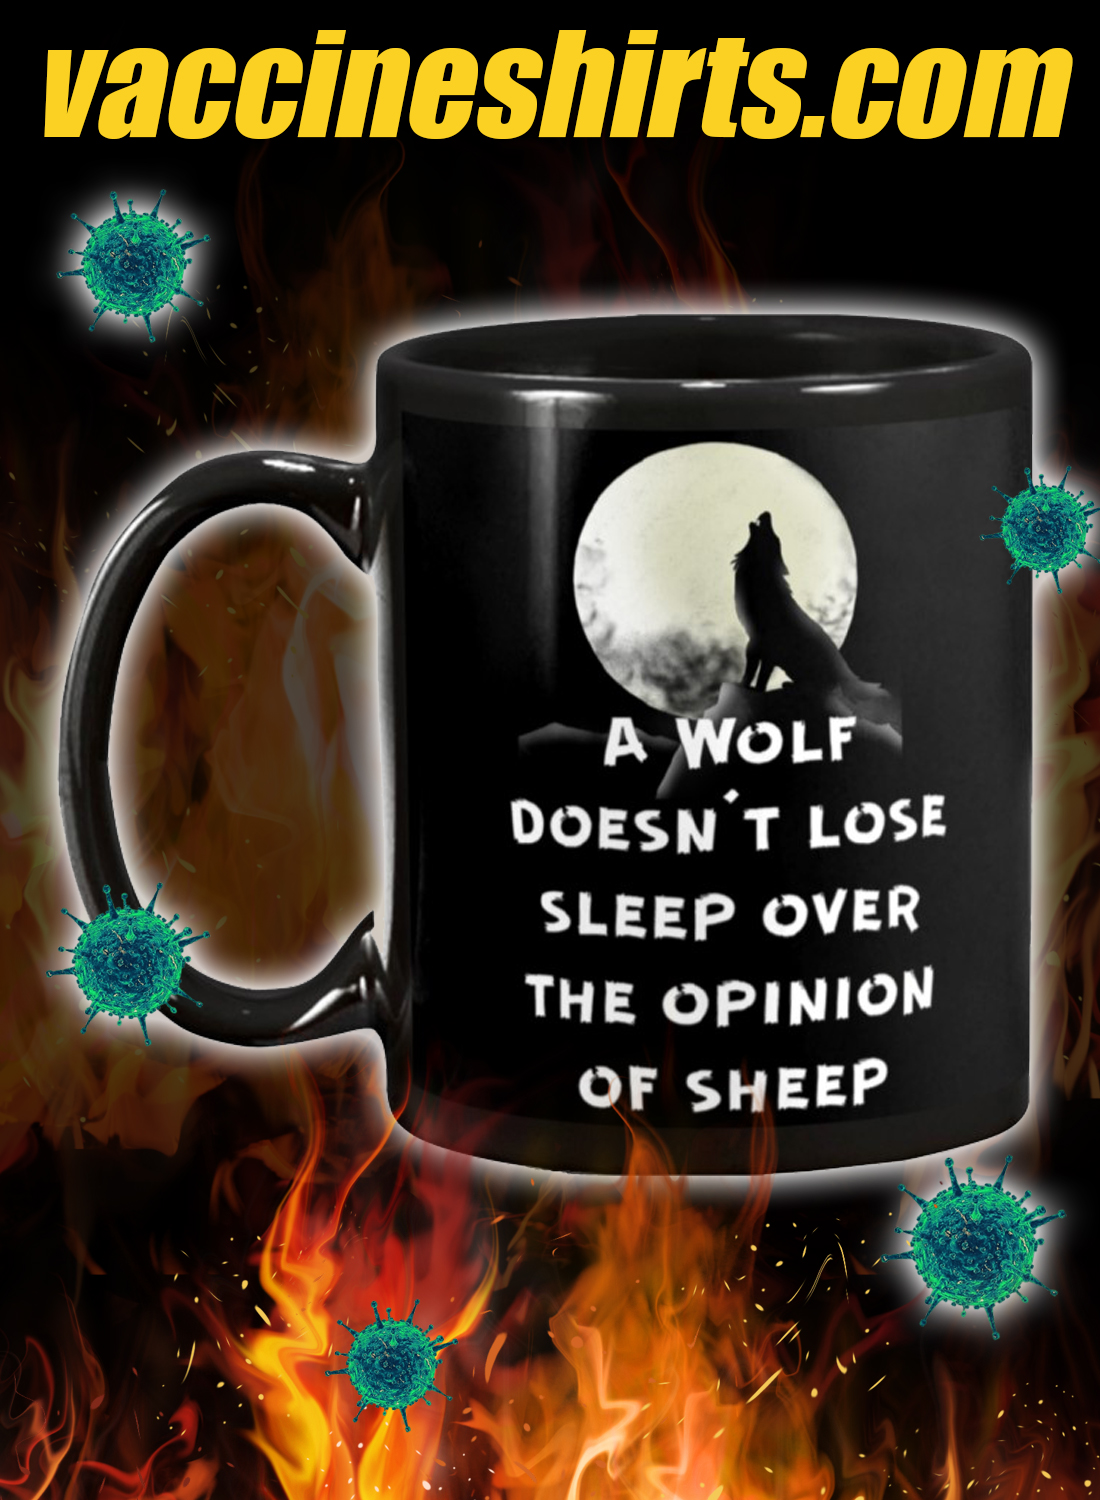 A wolf doesn't lose sleep over the opinion of sheep mug 3